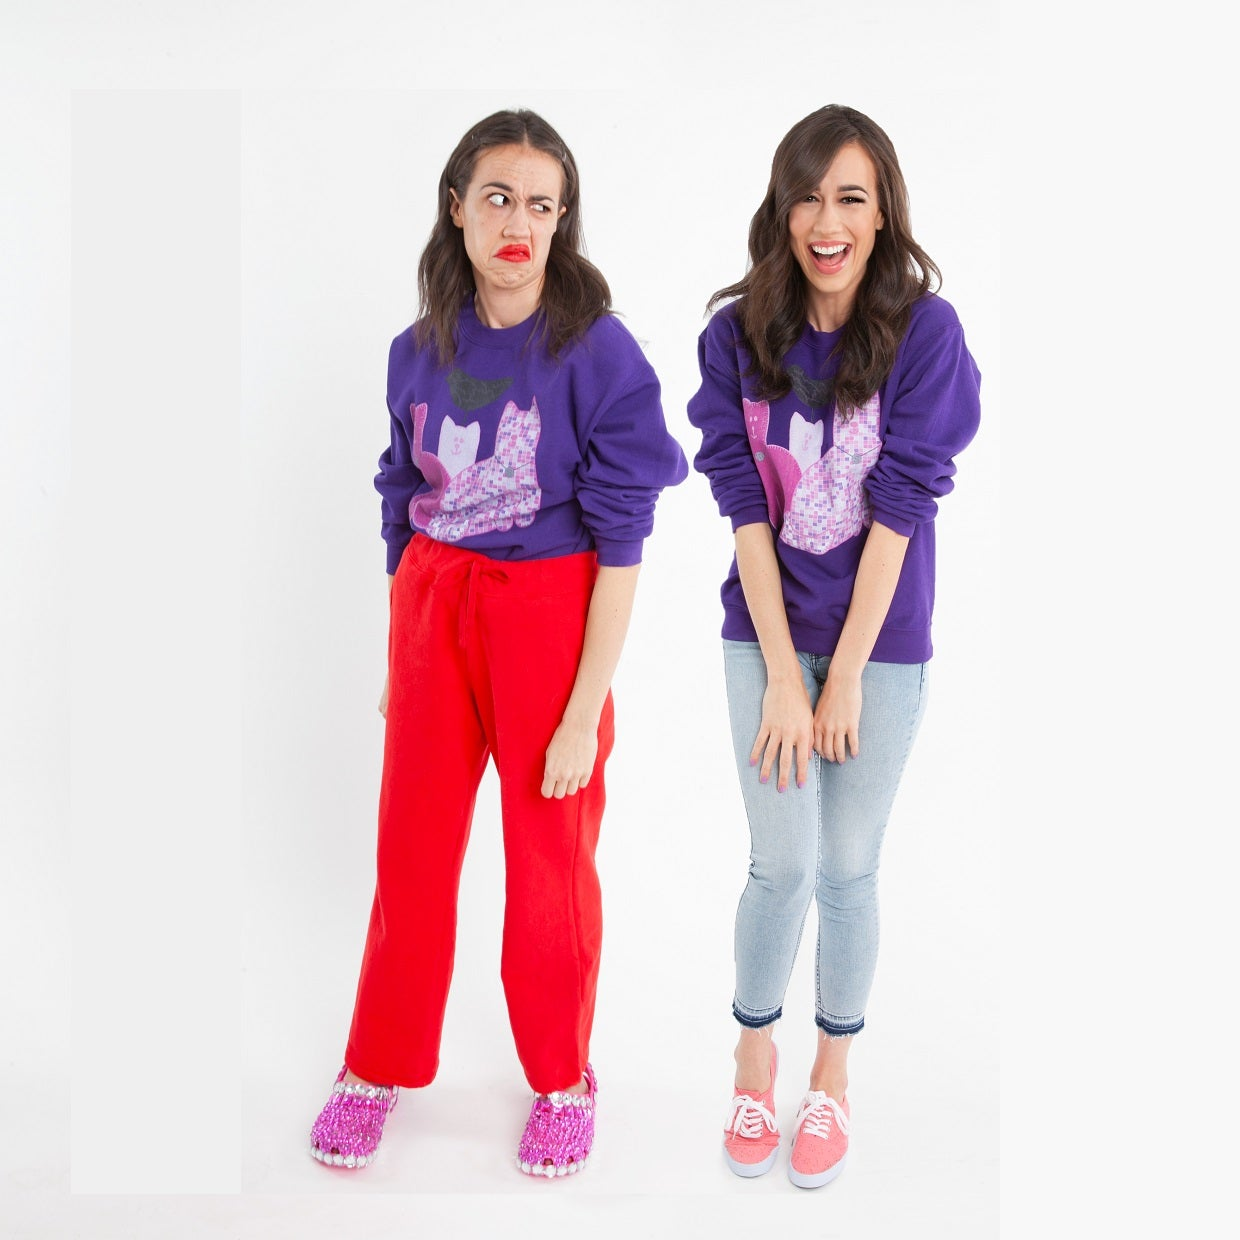 Miranda Sings Live…No Offense with special guest Colleen Ballinger